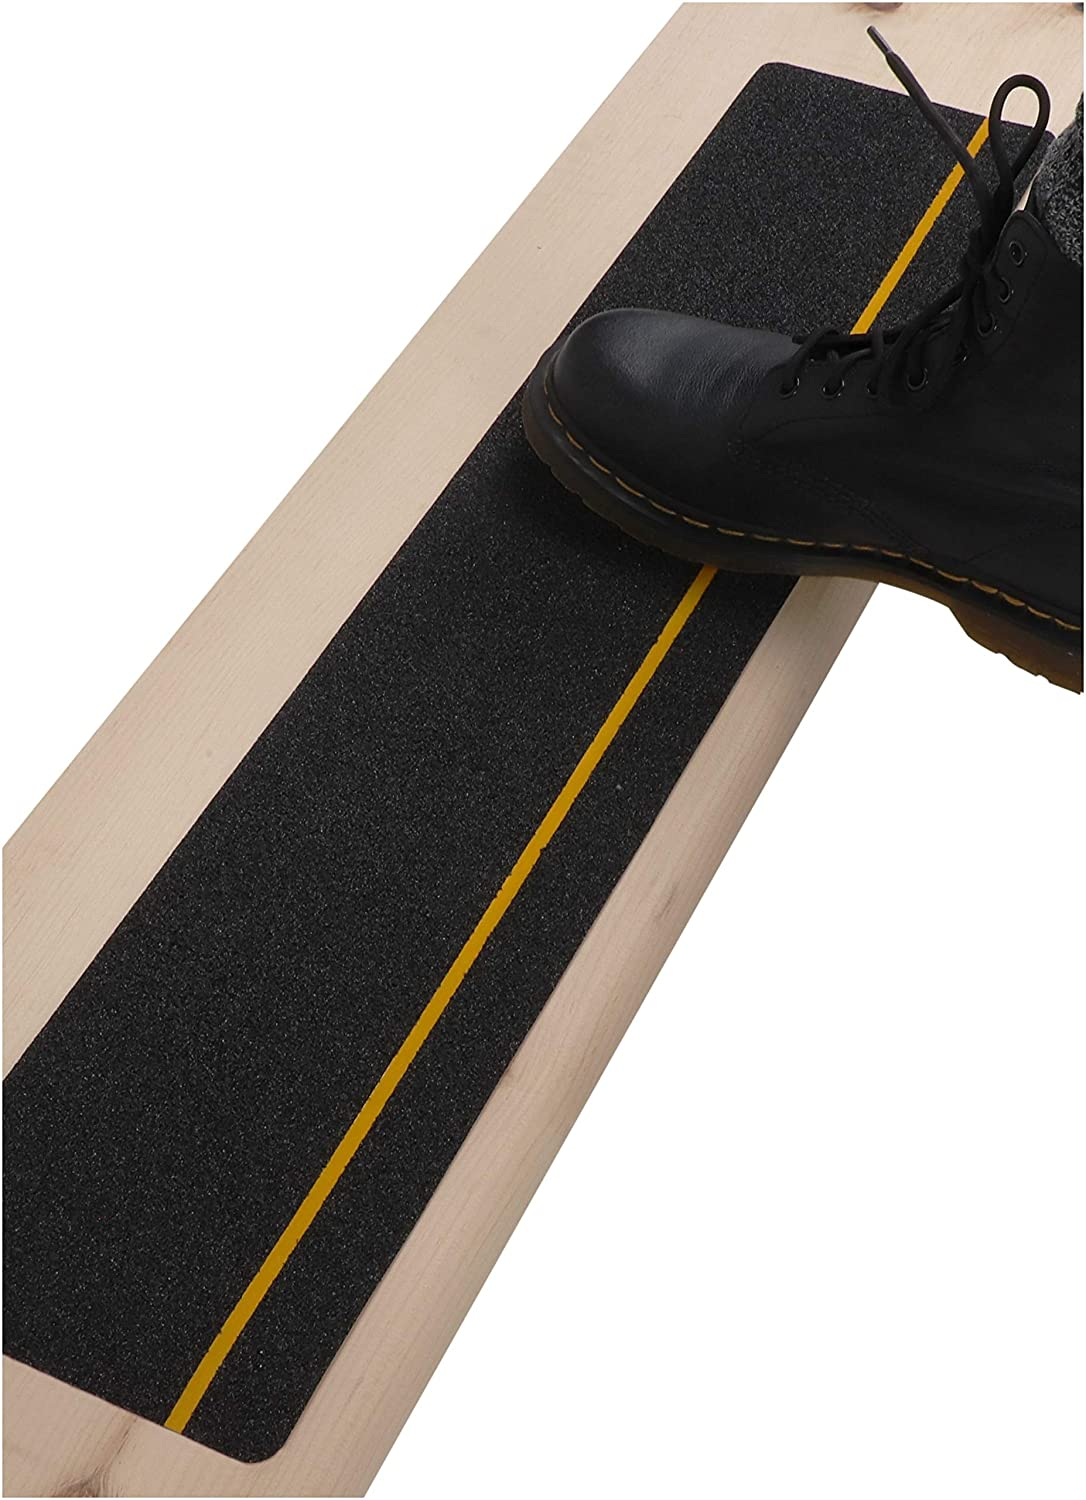 """6""""x30"""" Non-Slip Stair Treads Outdoor – (10-Pack) Reflective Anti ..."""